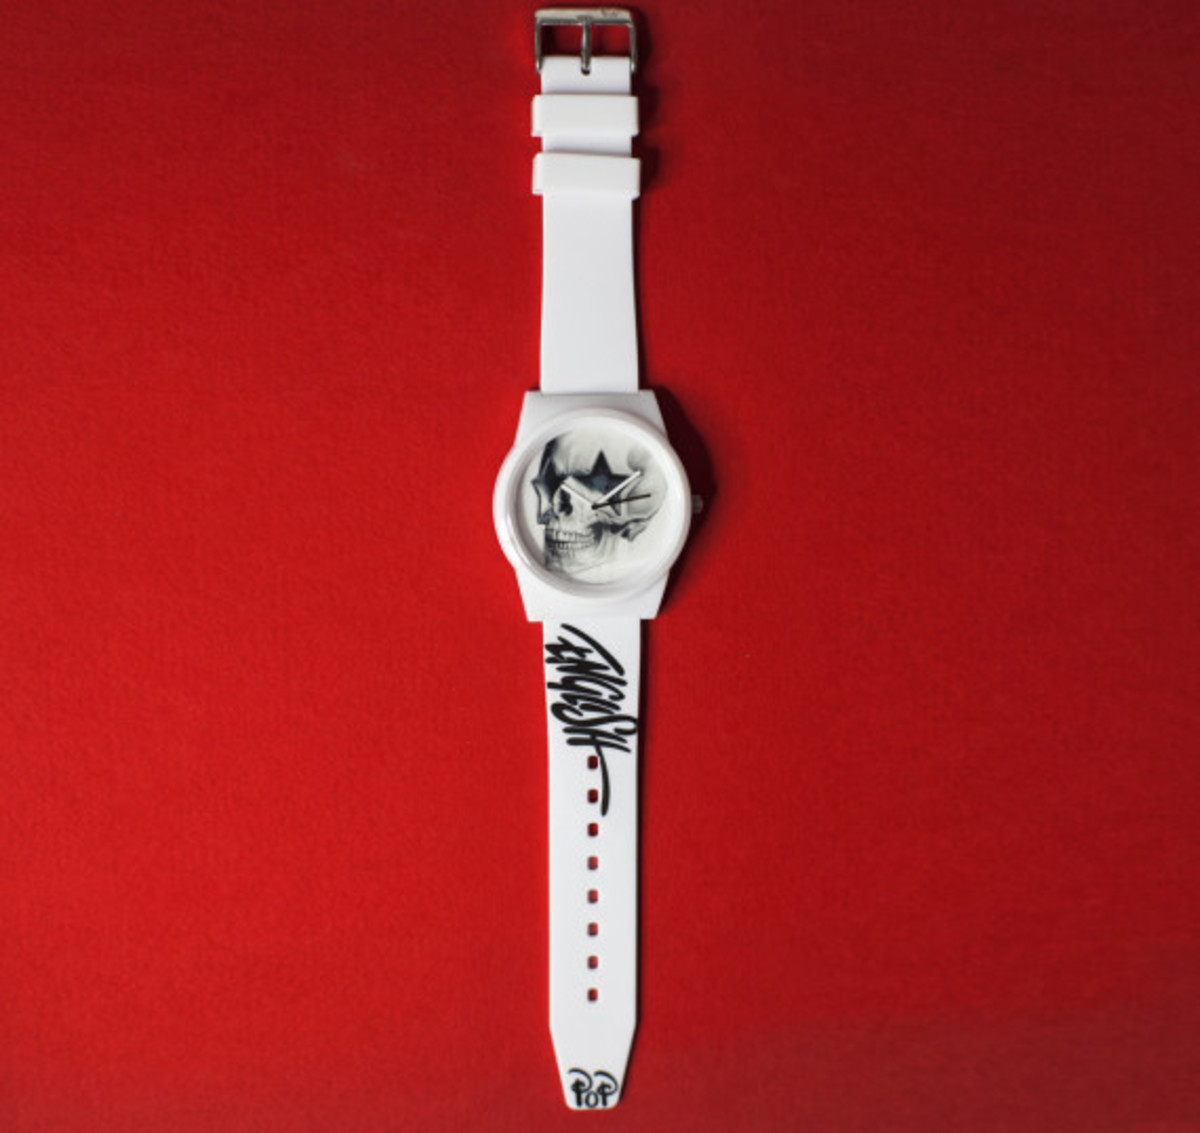 flud-ron-english-fall-2013-watch-collection-06